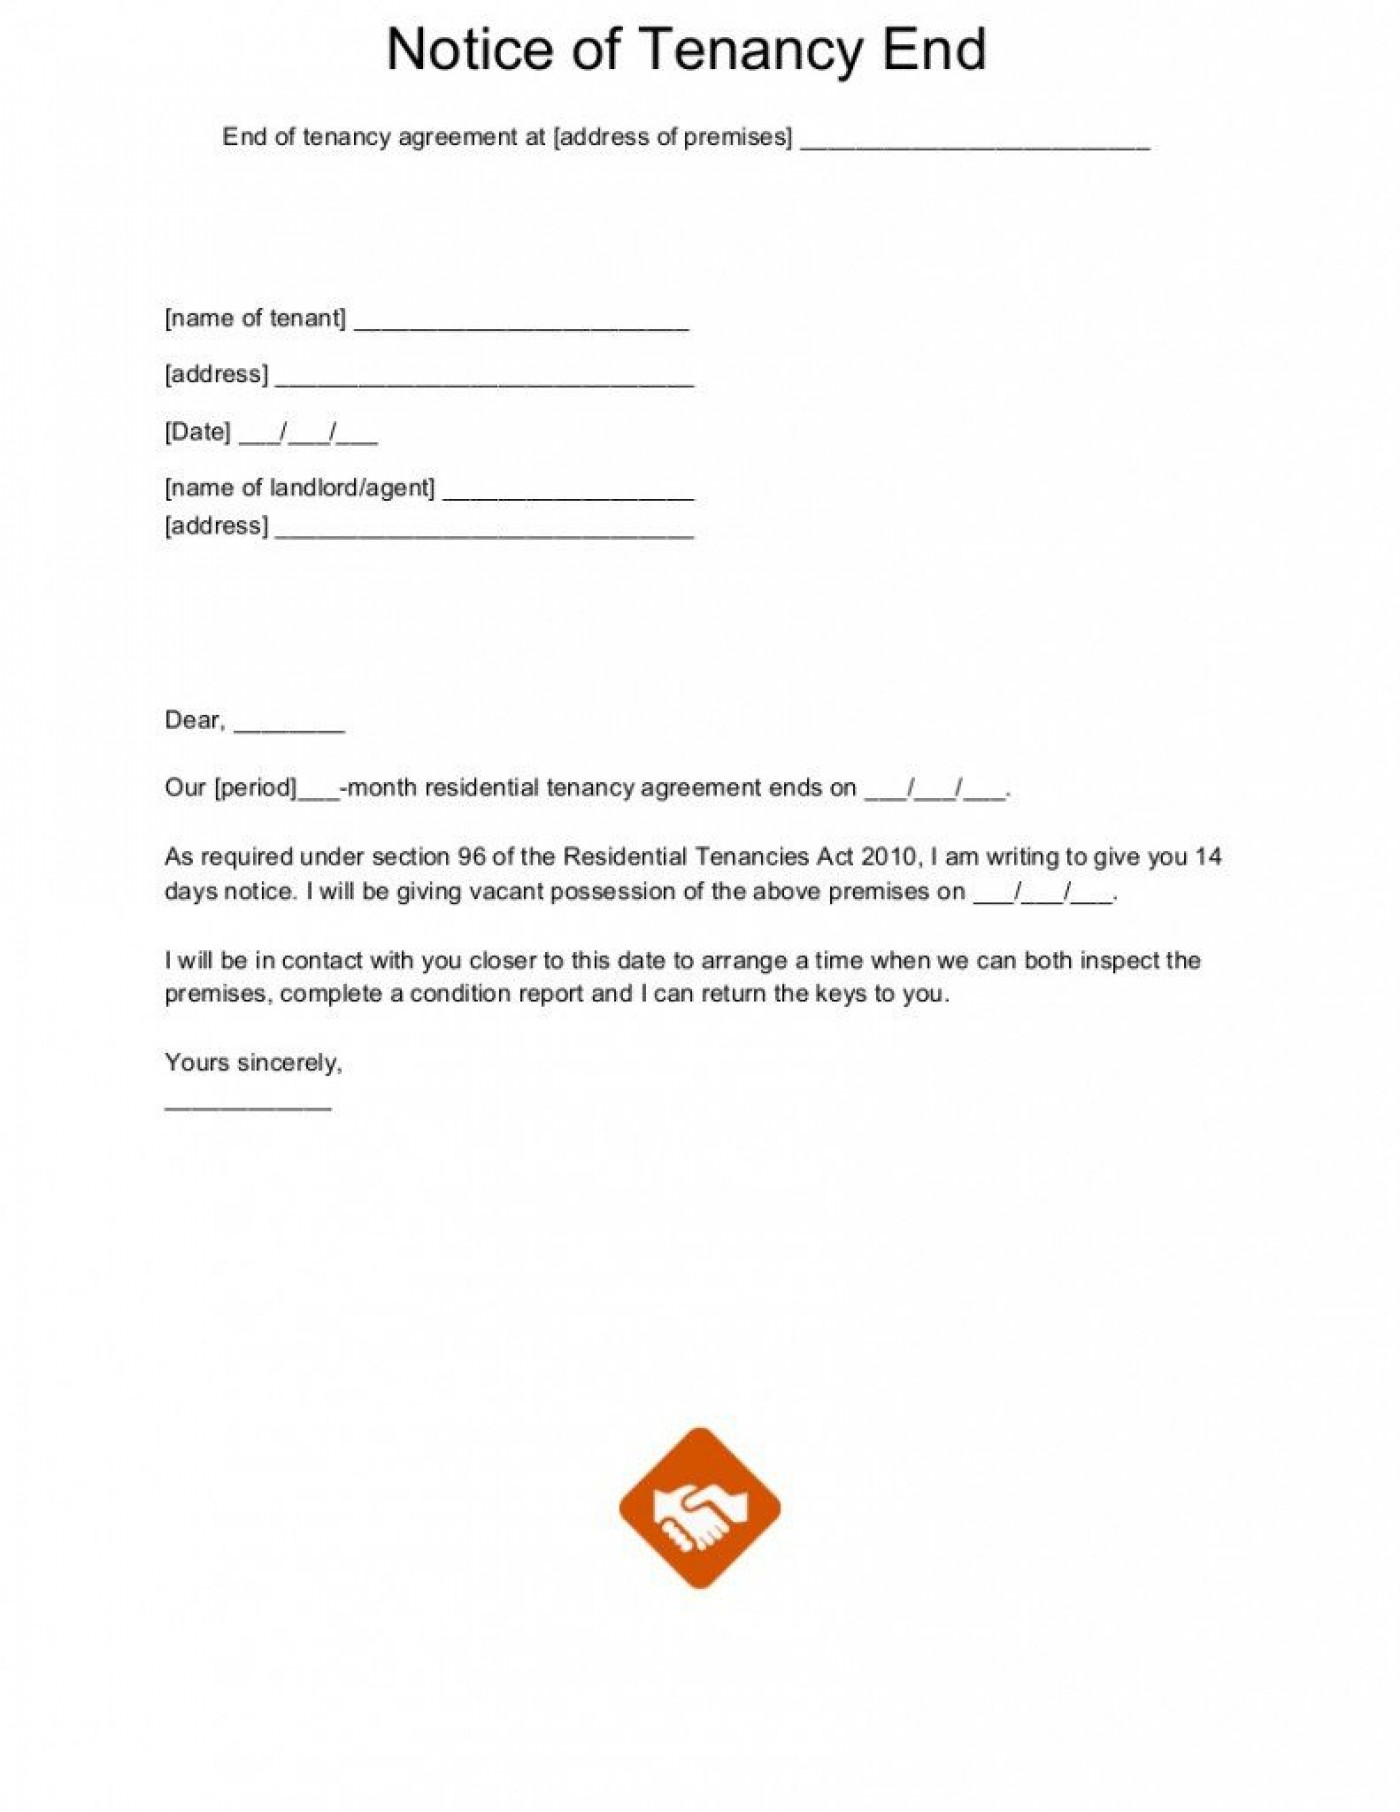 003 Wonderful Template For Terminating A Lease Agreement High Definition  Rental Sample Letter1400